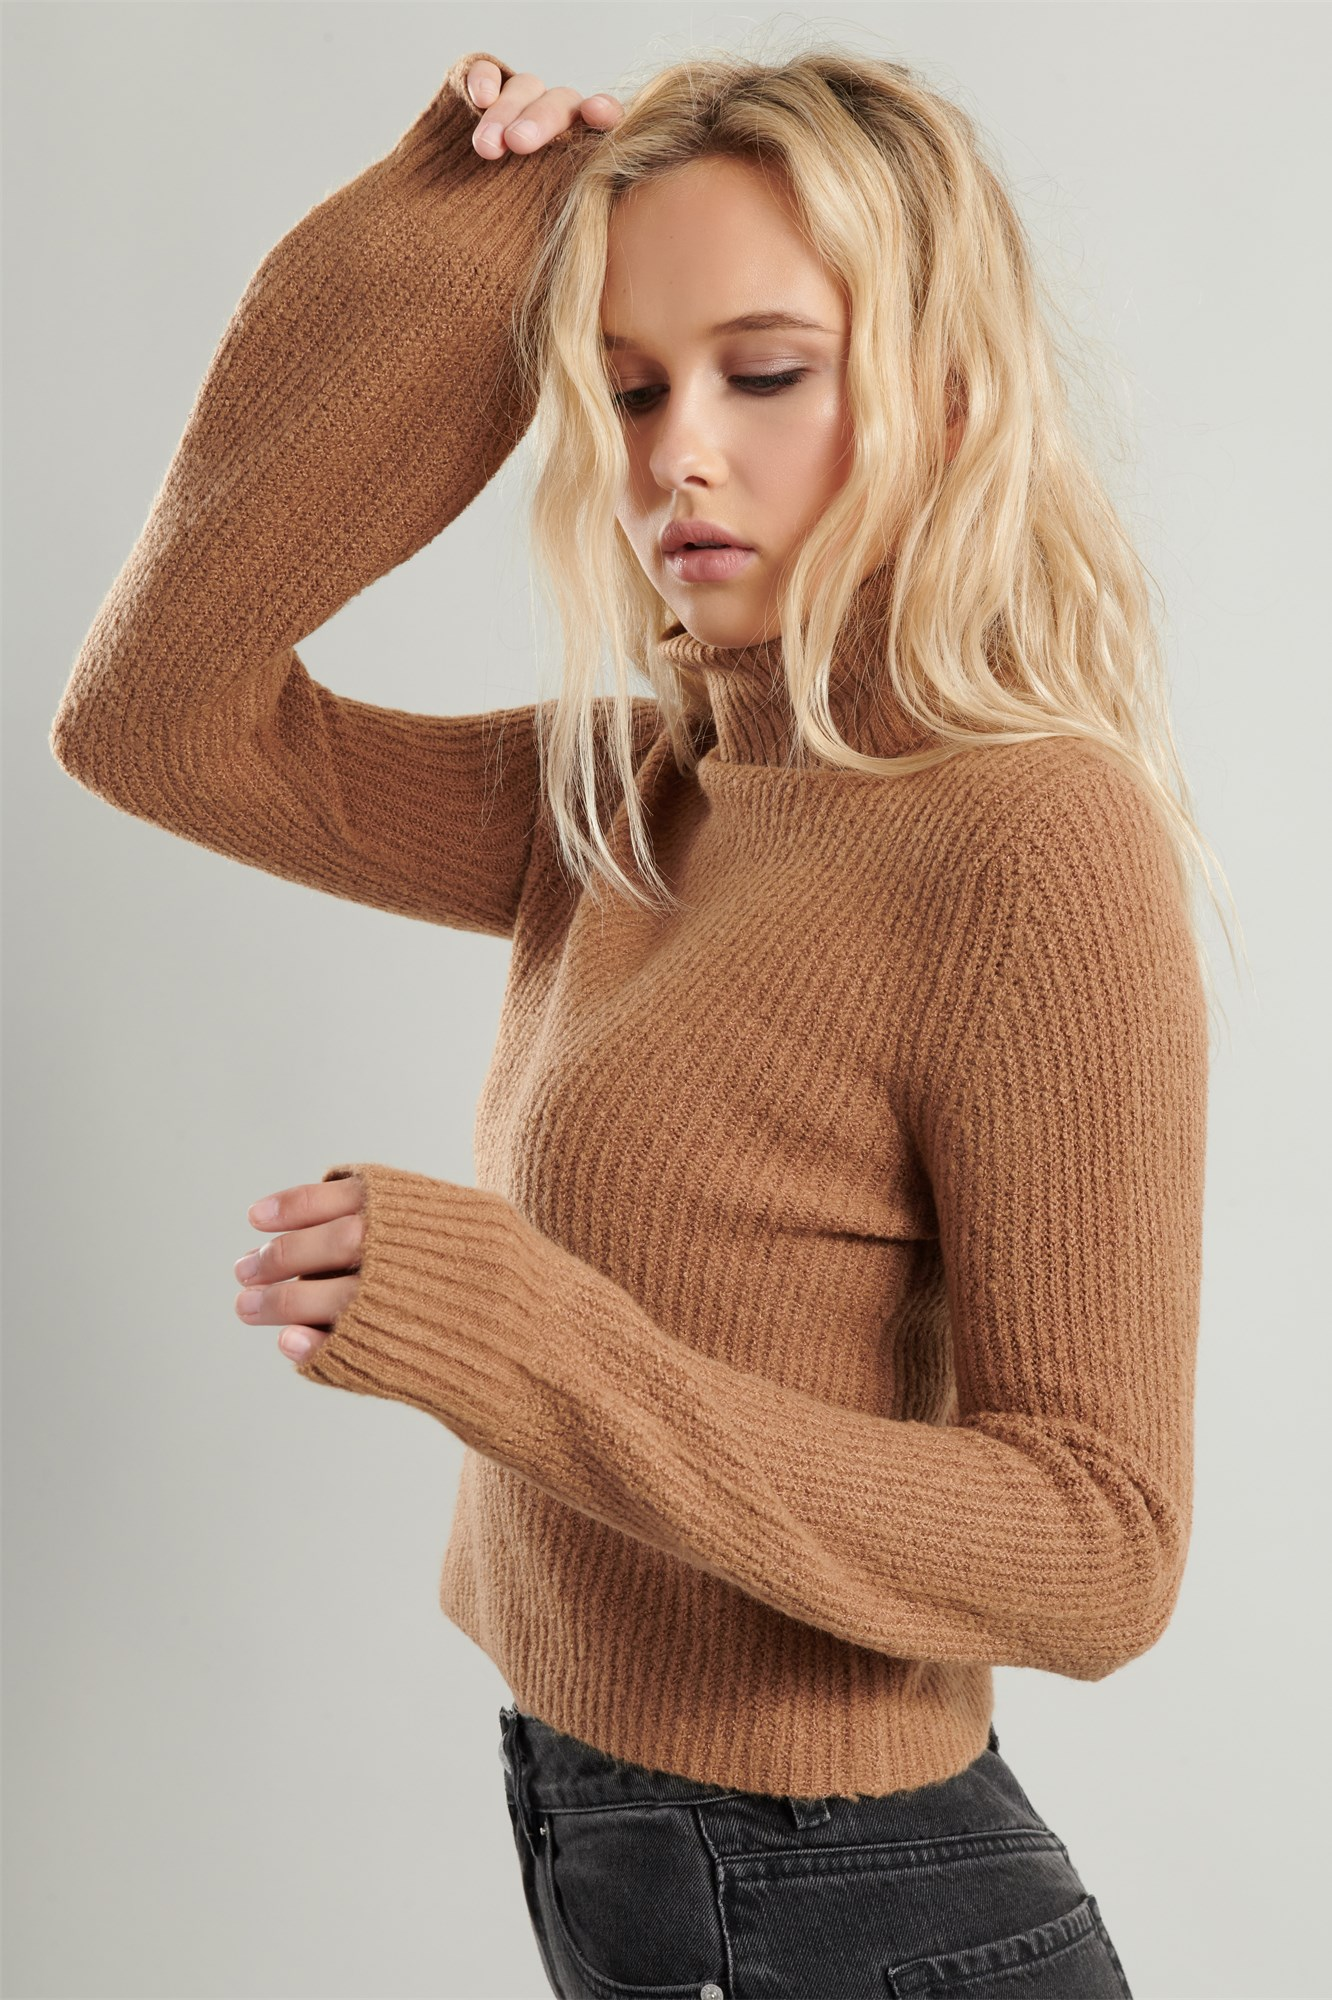 Image 3 of The Audrey Sweater